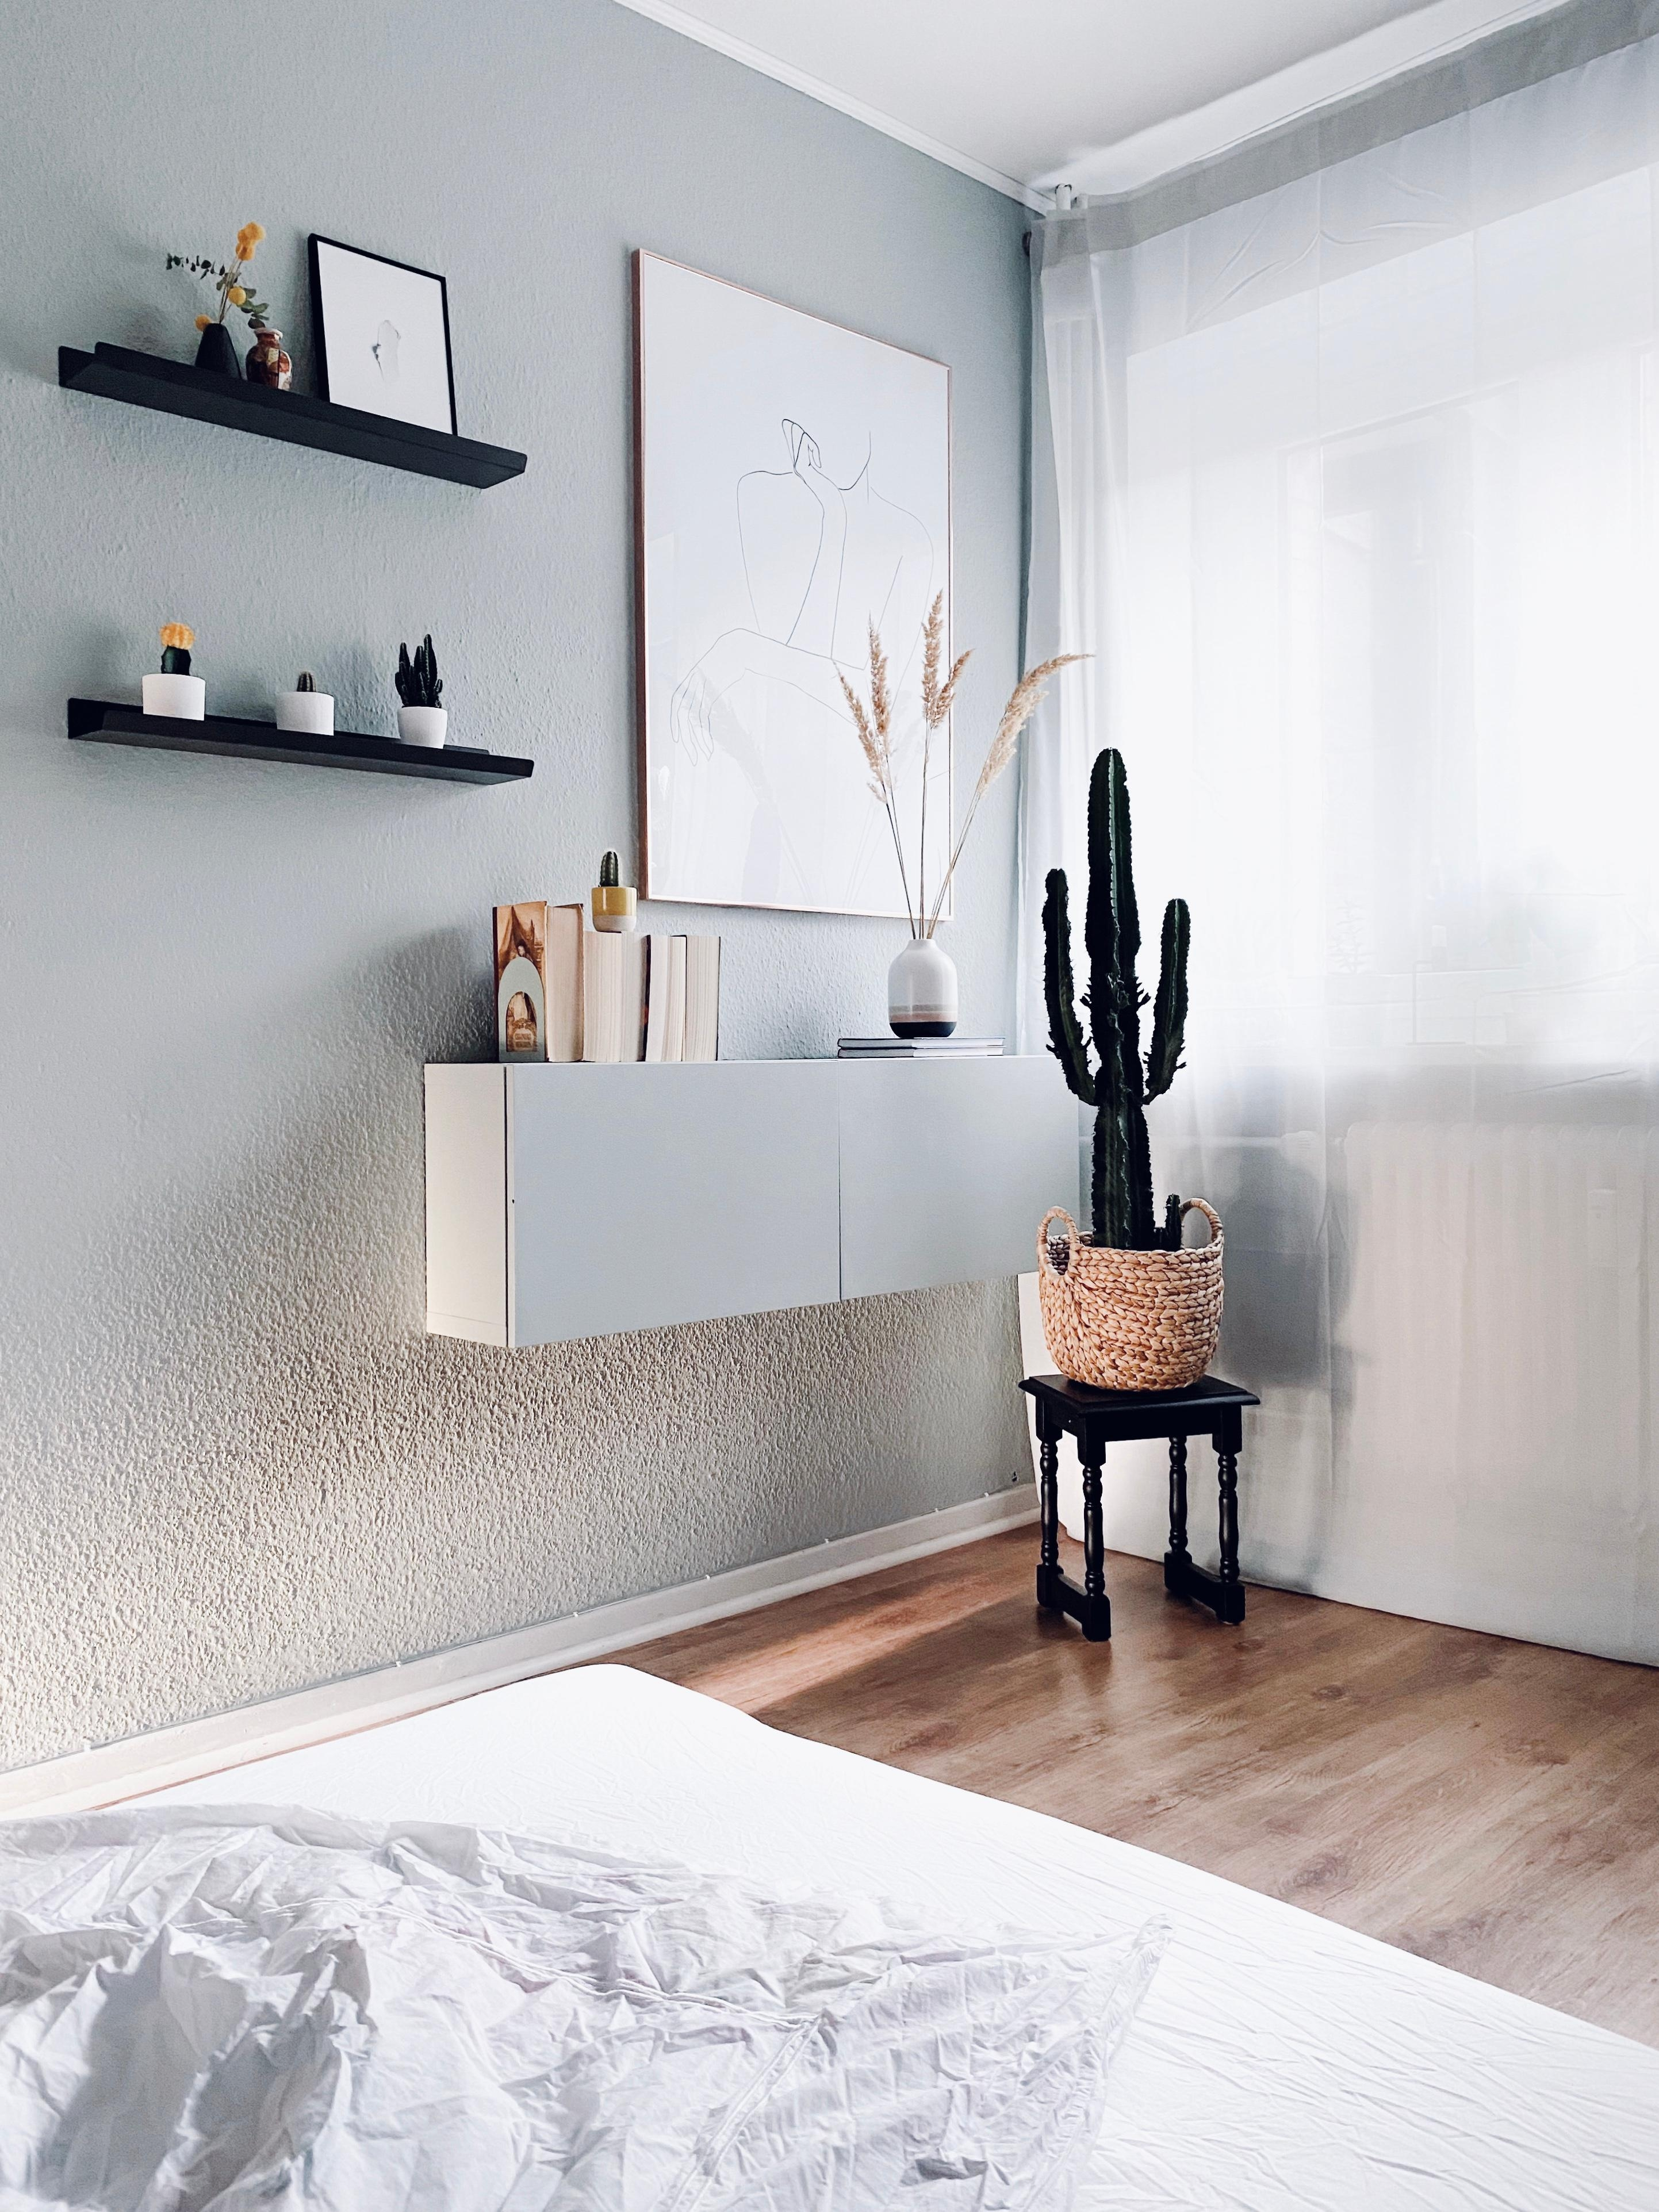 #bedroom #bedroominspo #minimalism #mynordichome #interior #hygge #mynordicroom #scandinavianliving #kaktuslover